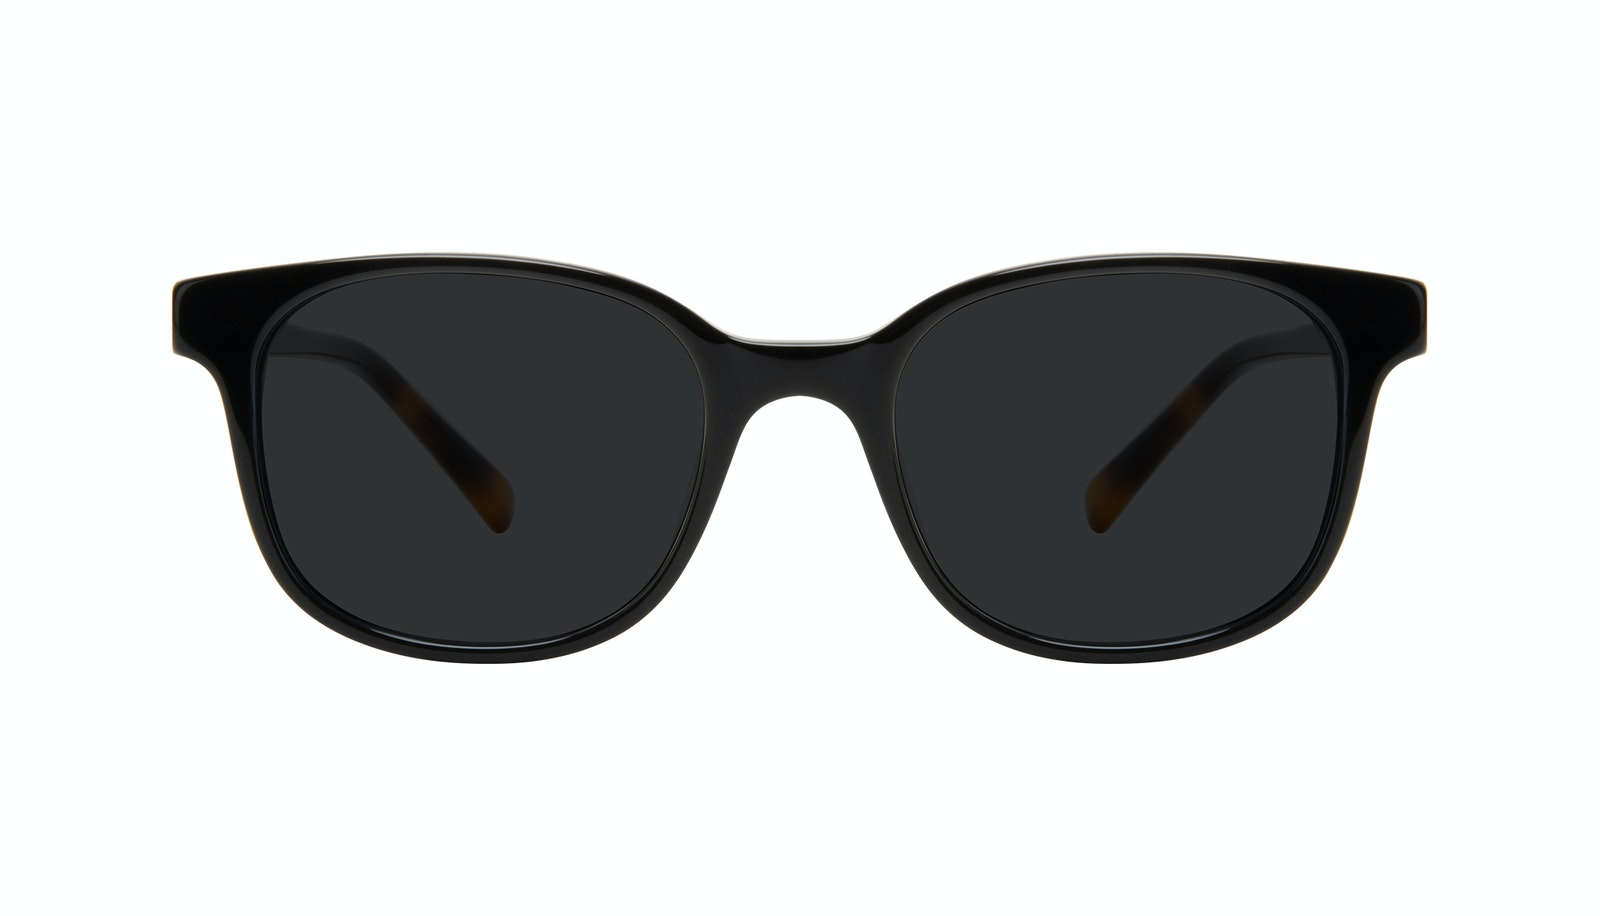 Affordable Fashion Glasses Square Sunglasses Women Unique Onyx